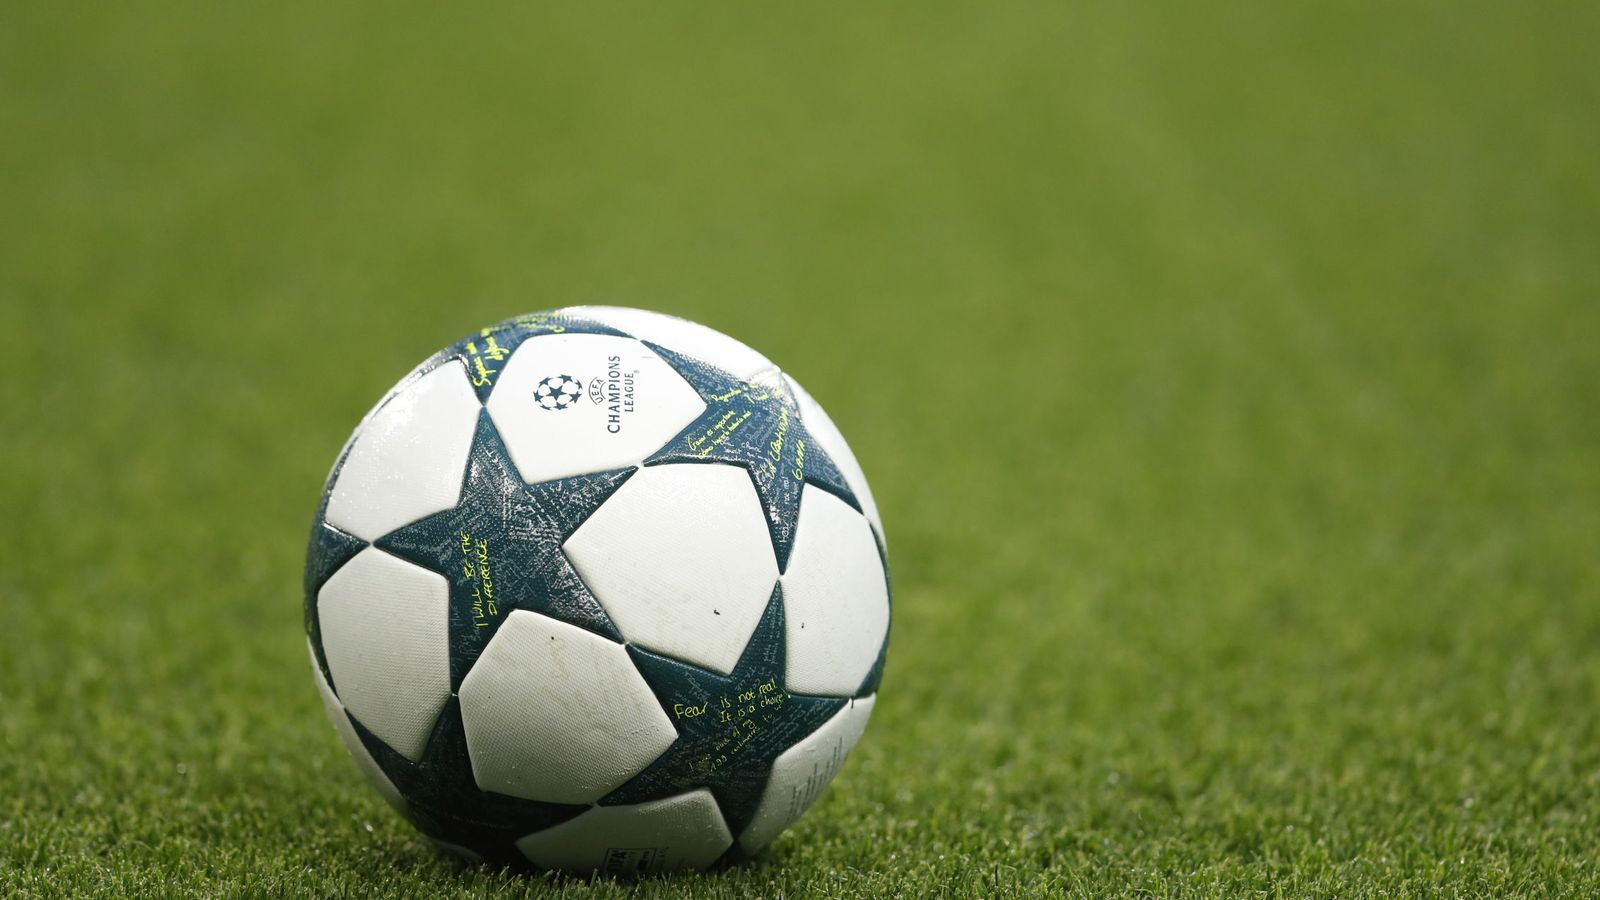 Foto: Match ball before the game